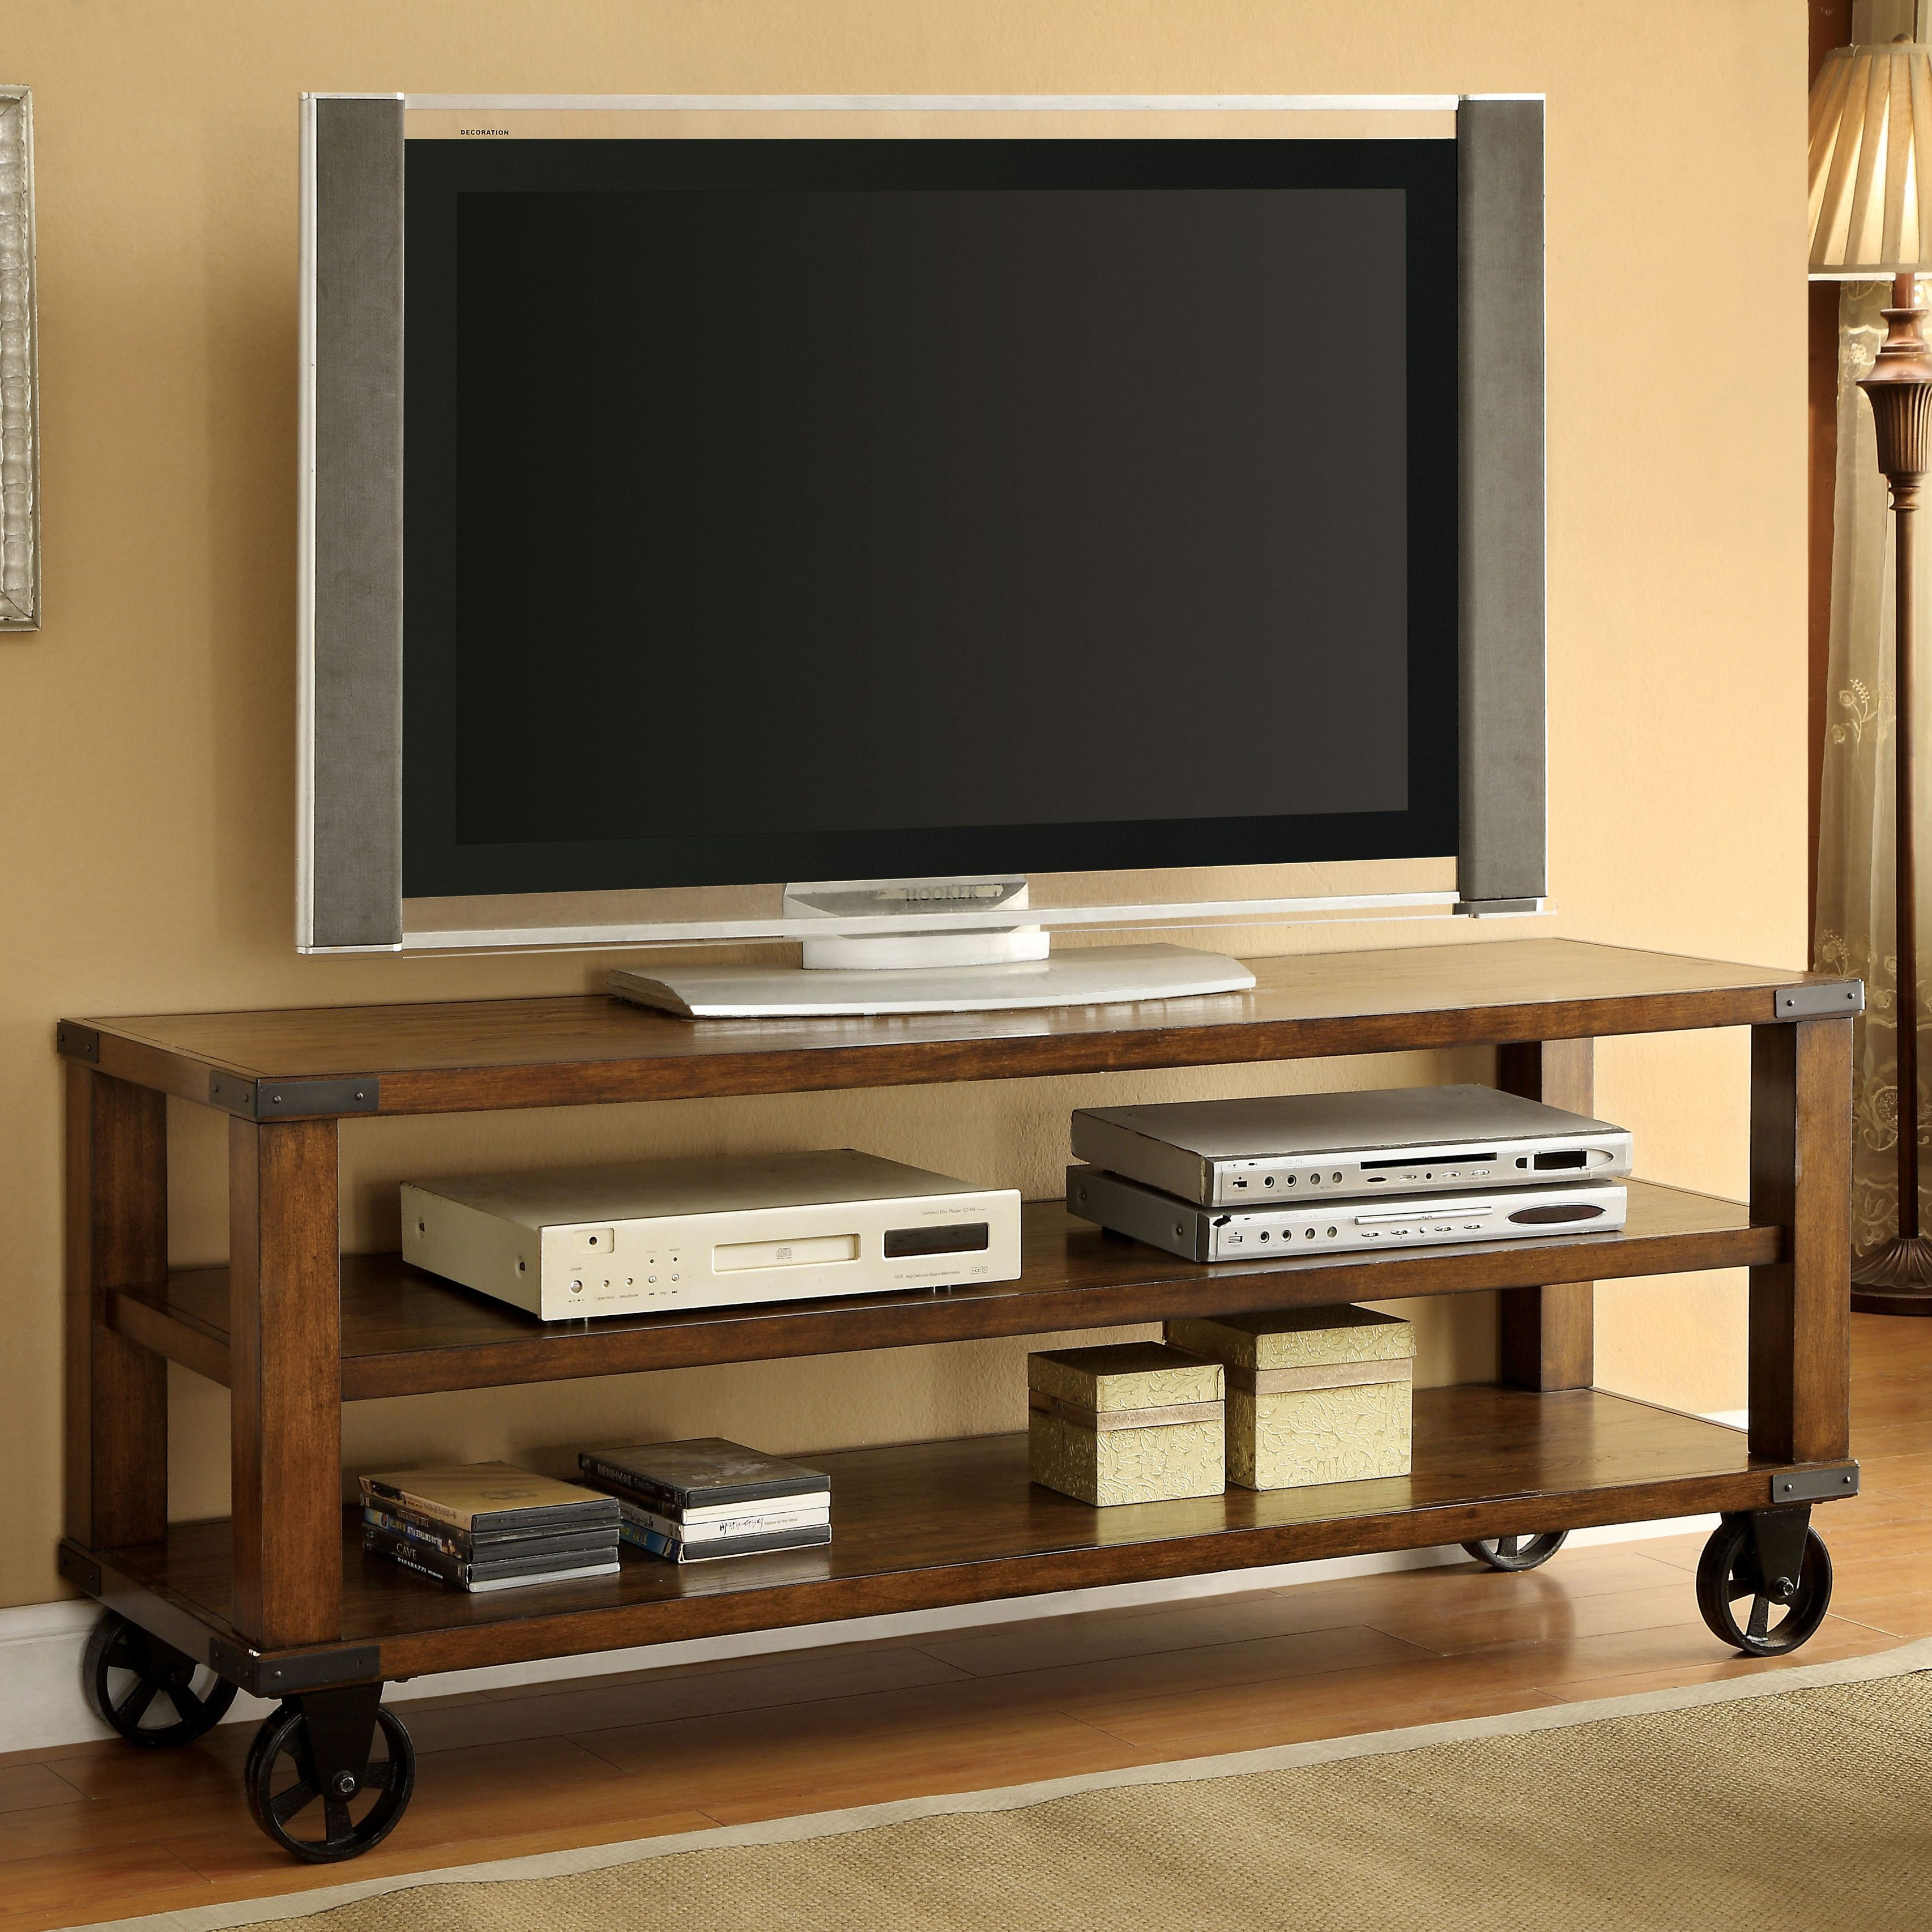 Stunningly Crafted From Solid Wood And Veneers This Tv Stand